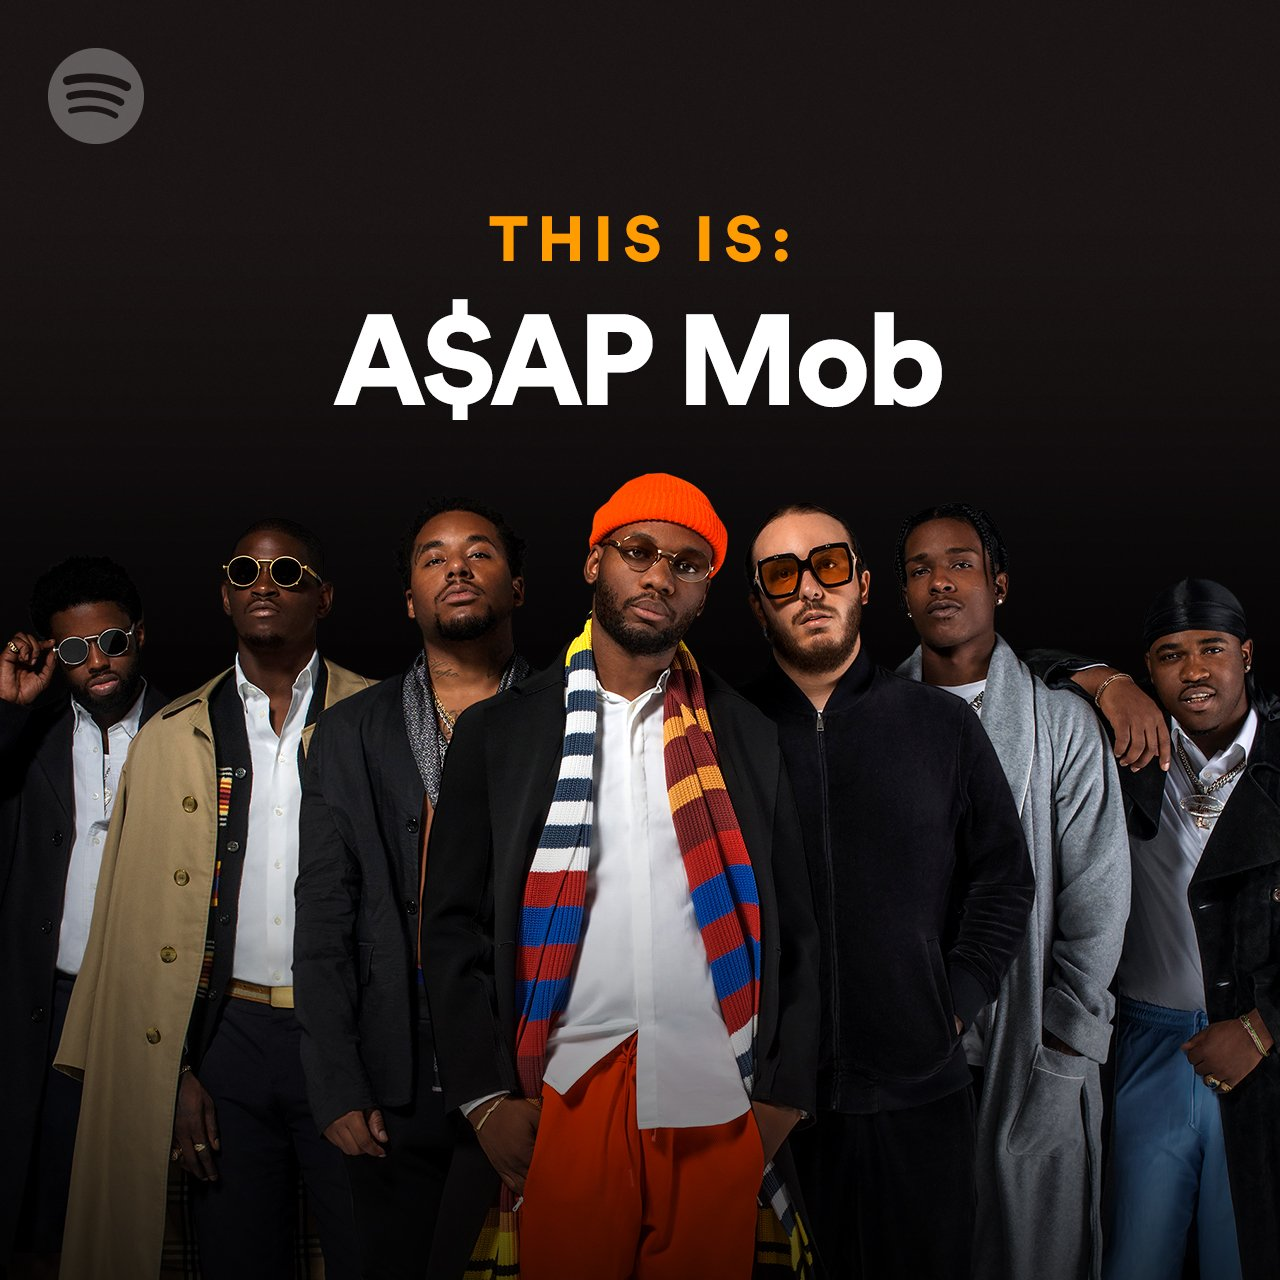 The essential A$AP Mob playlist, curated by the crew in honor of #YAMSDAY tomorrow �� https://t.co/iRUL92bwxp https://t.co/nfFd9LkpTD